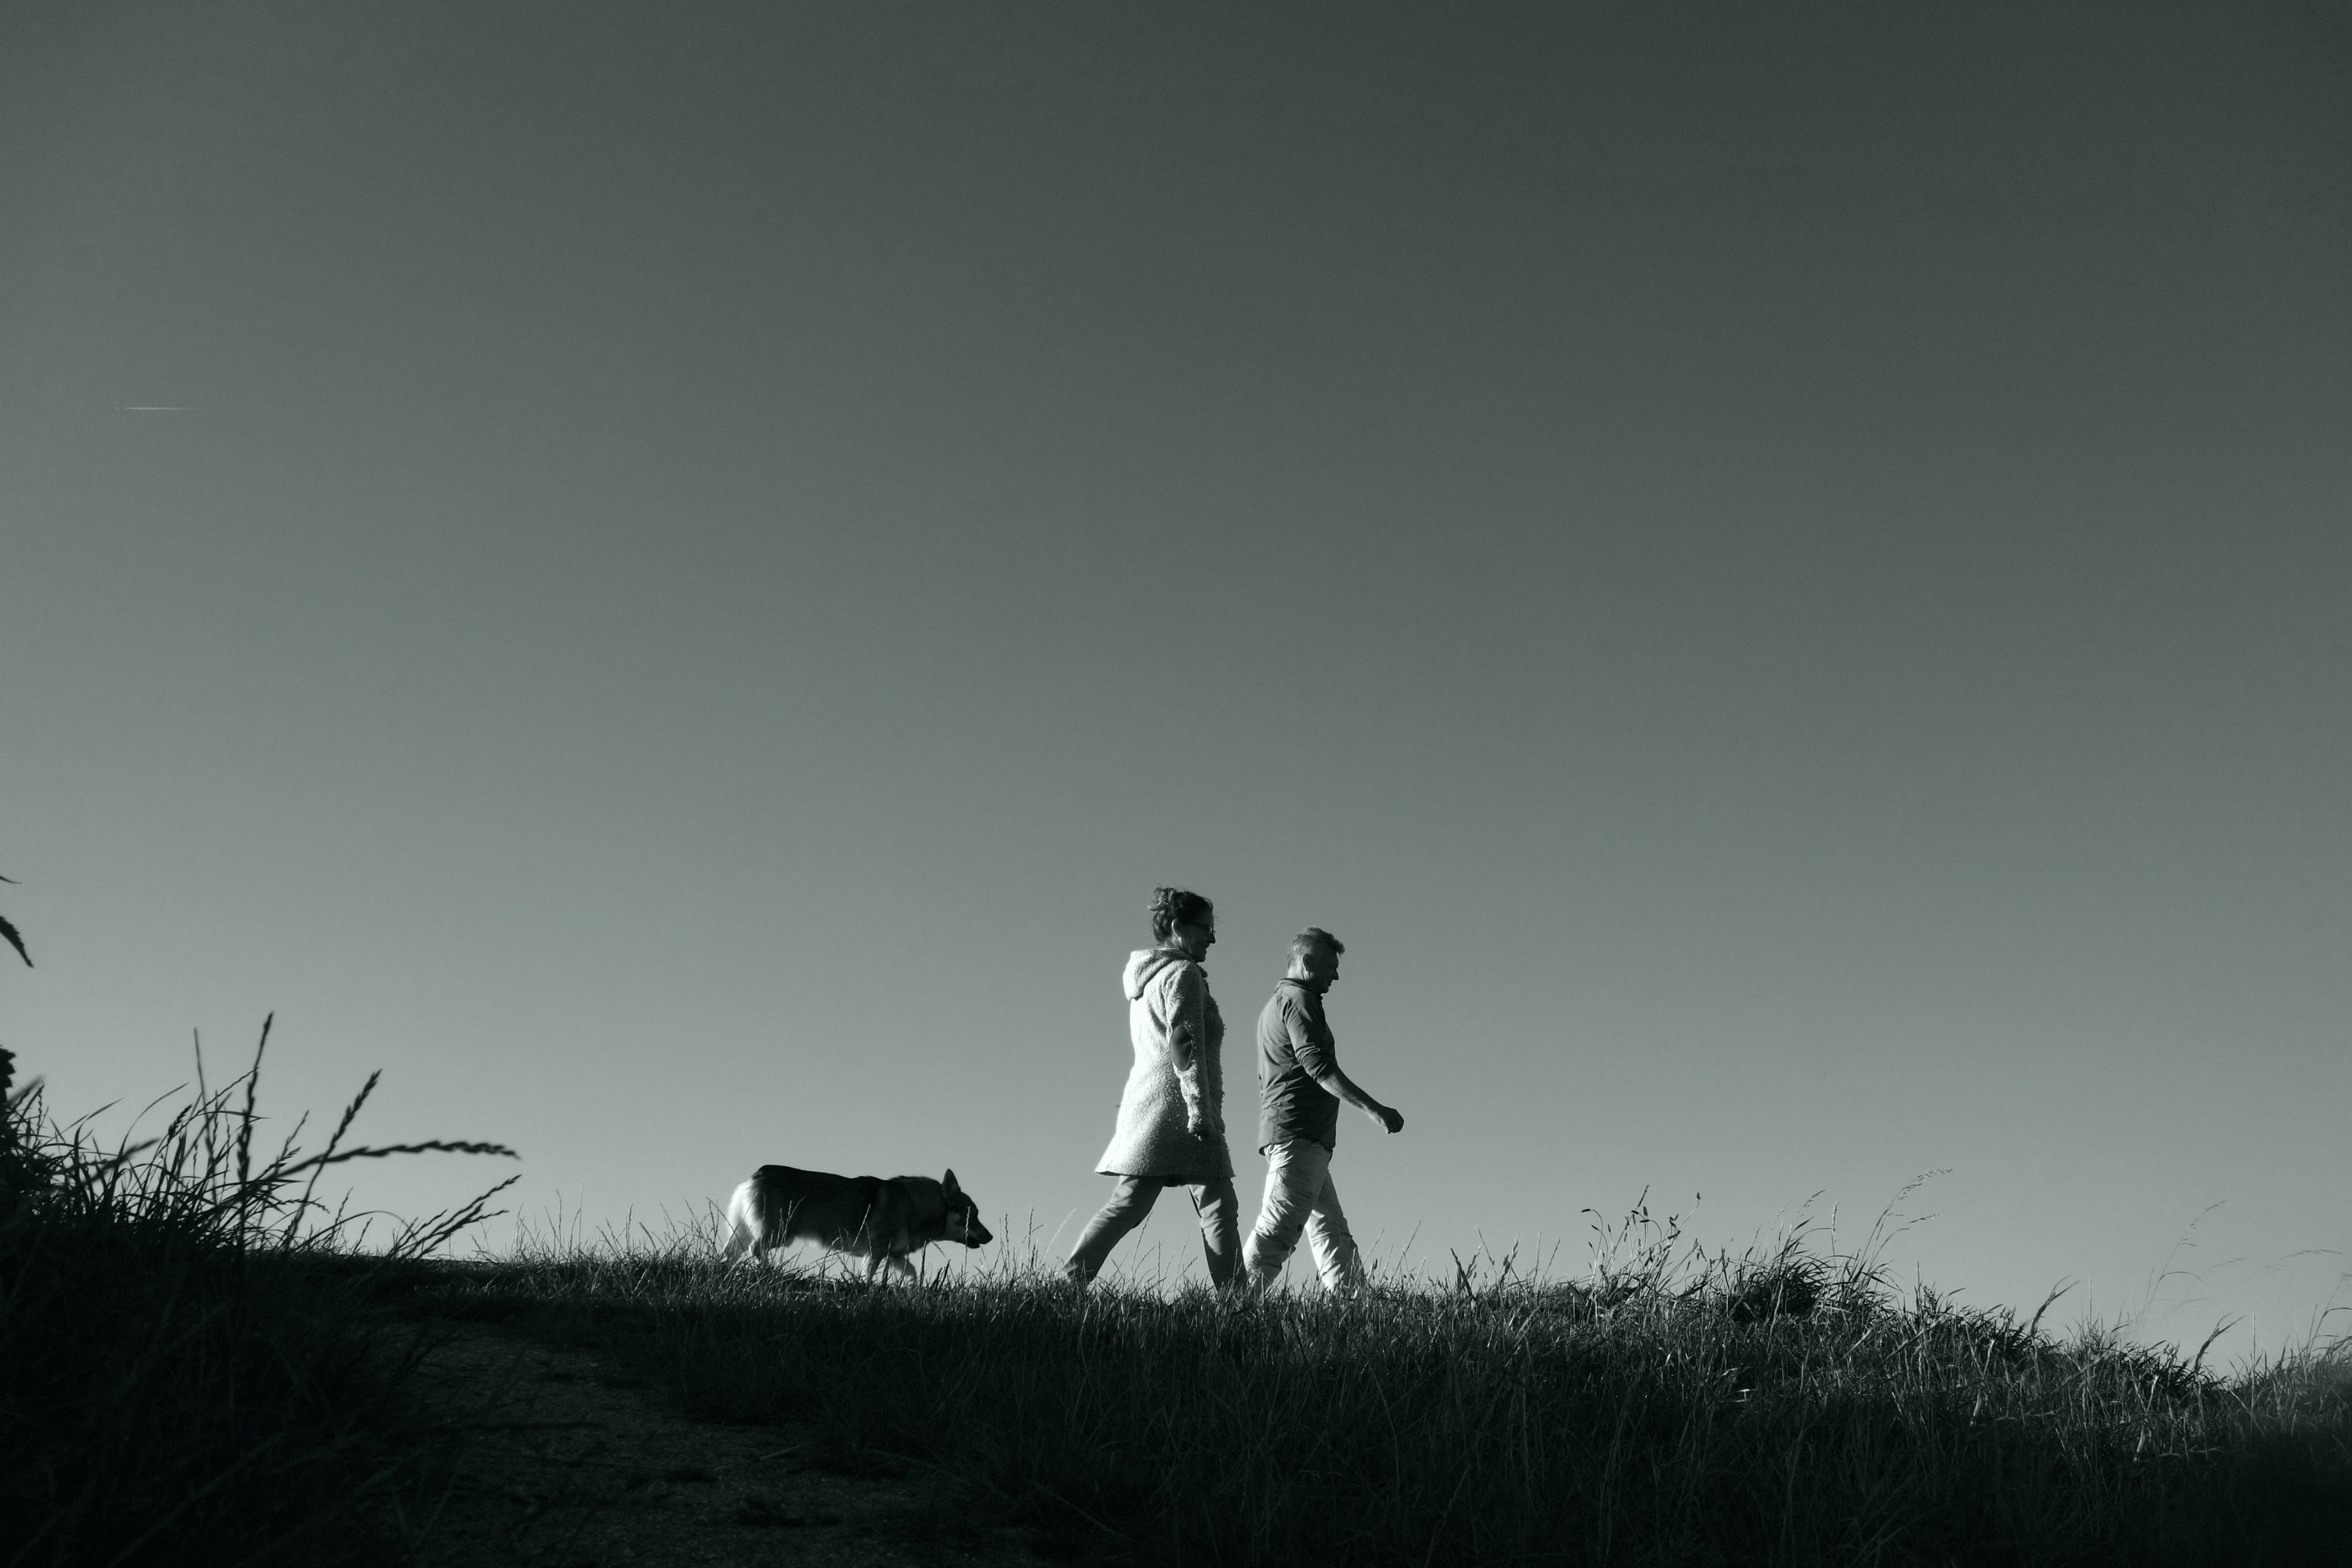 Free stock photo of person, people, walking, silhouette